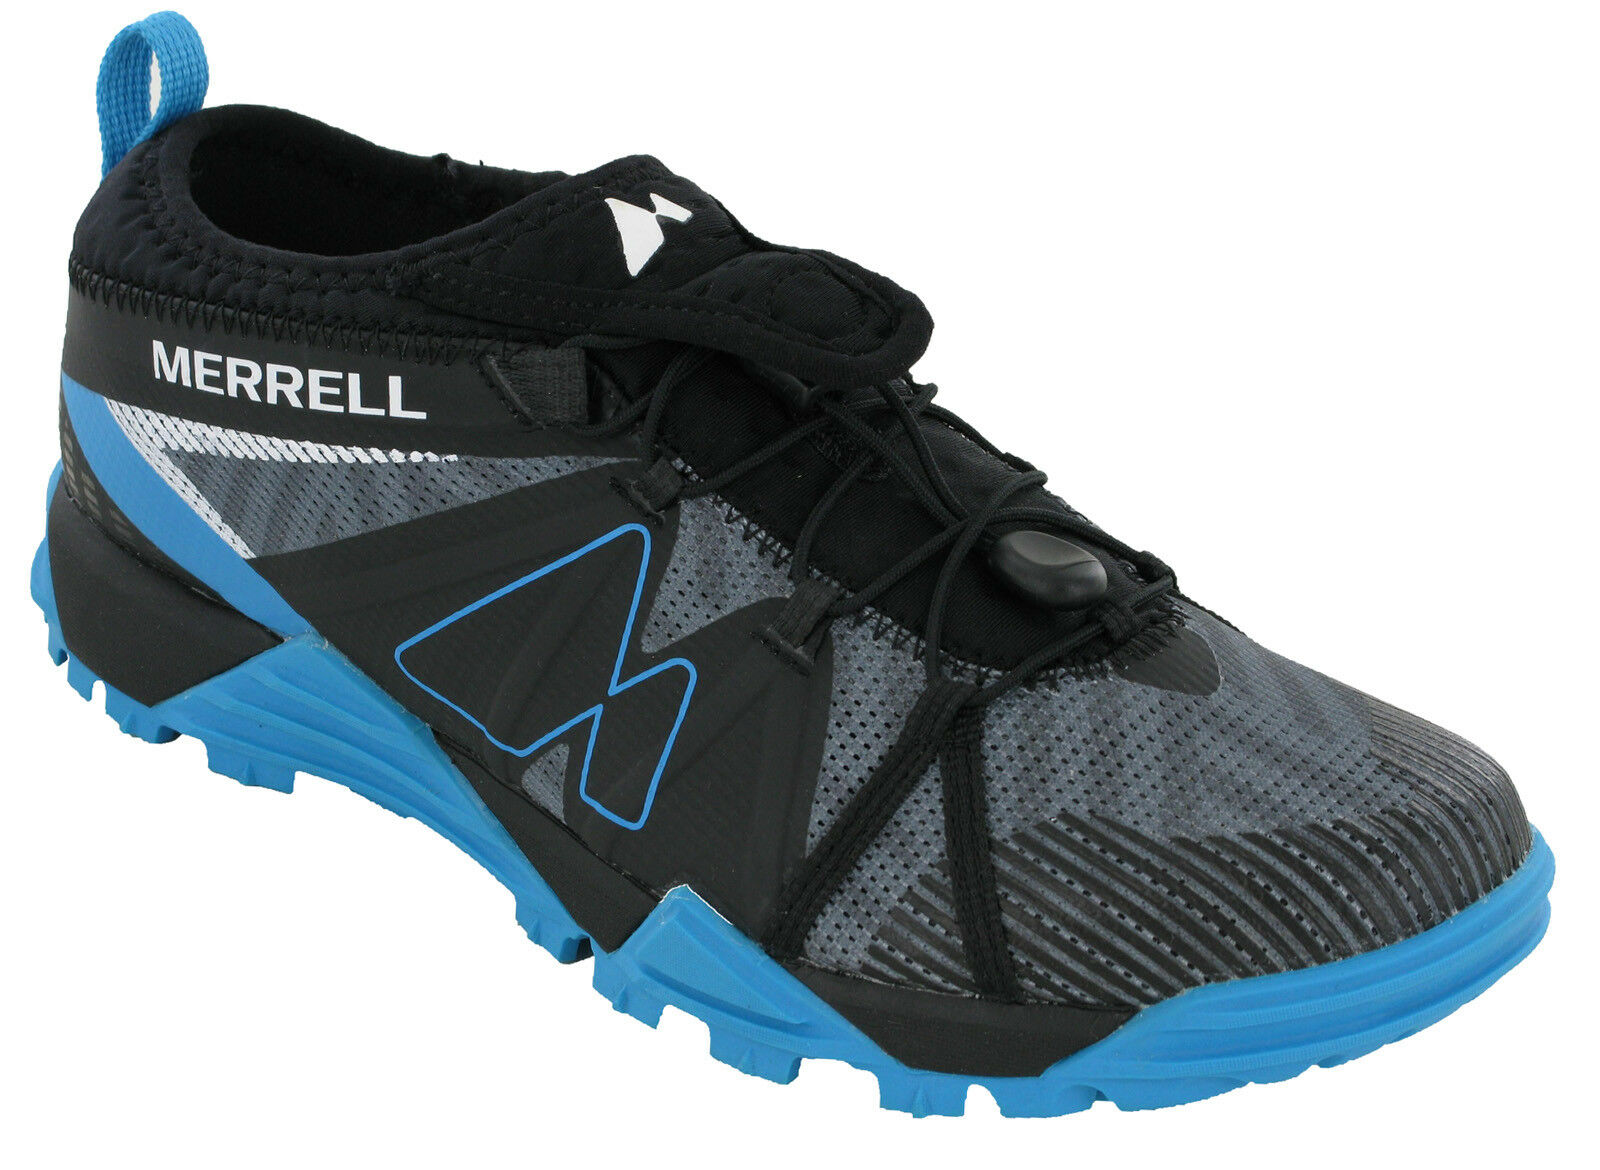 Merrell Avalaunch Trainers Mens Mesh Toggle Trail Hiking Running shoes J09685